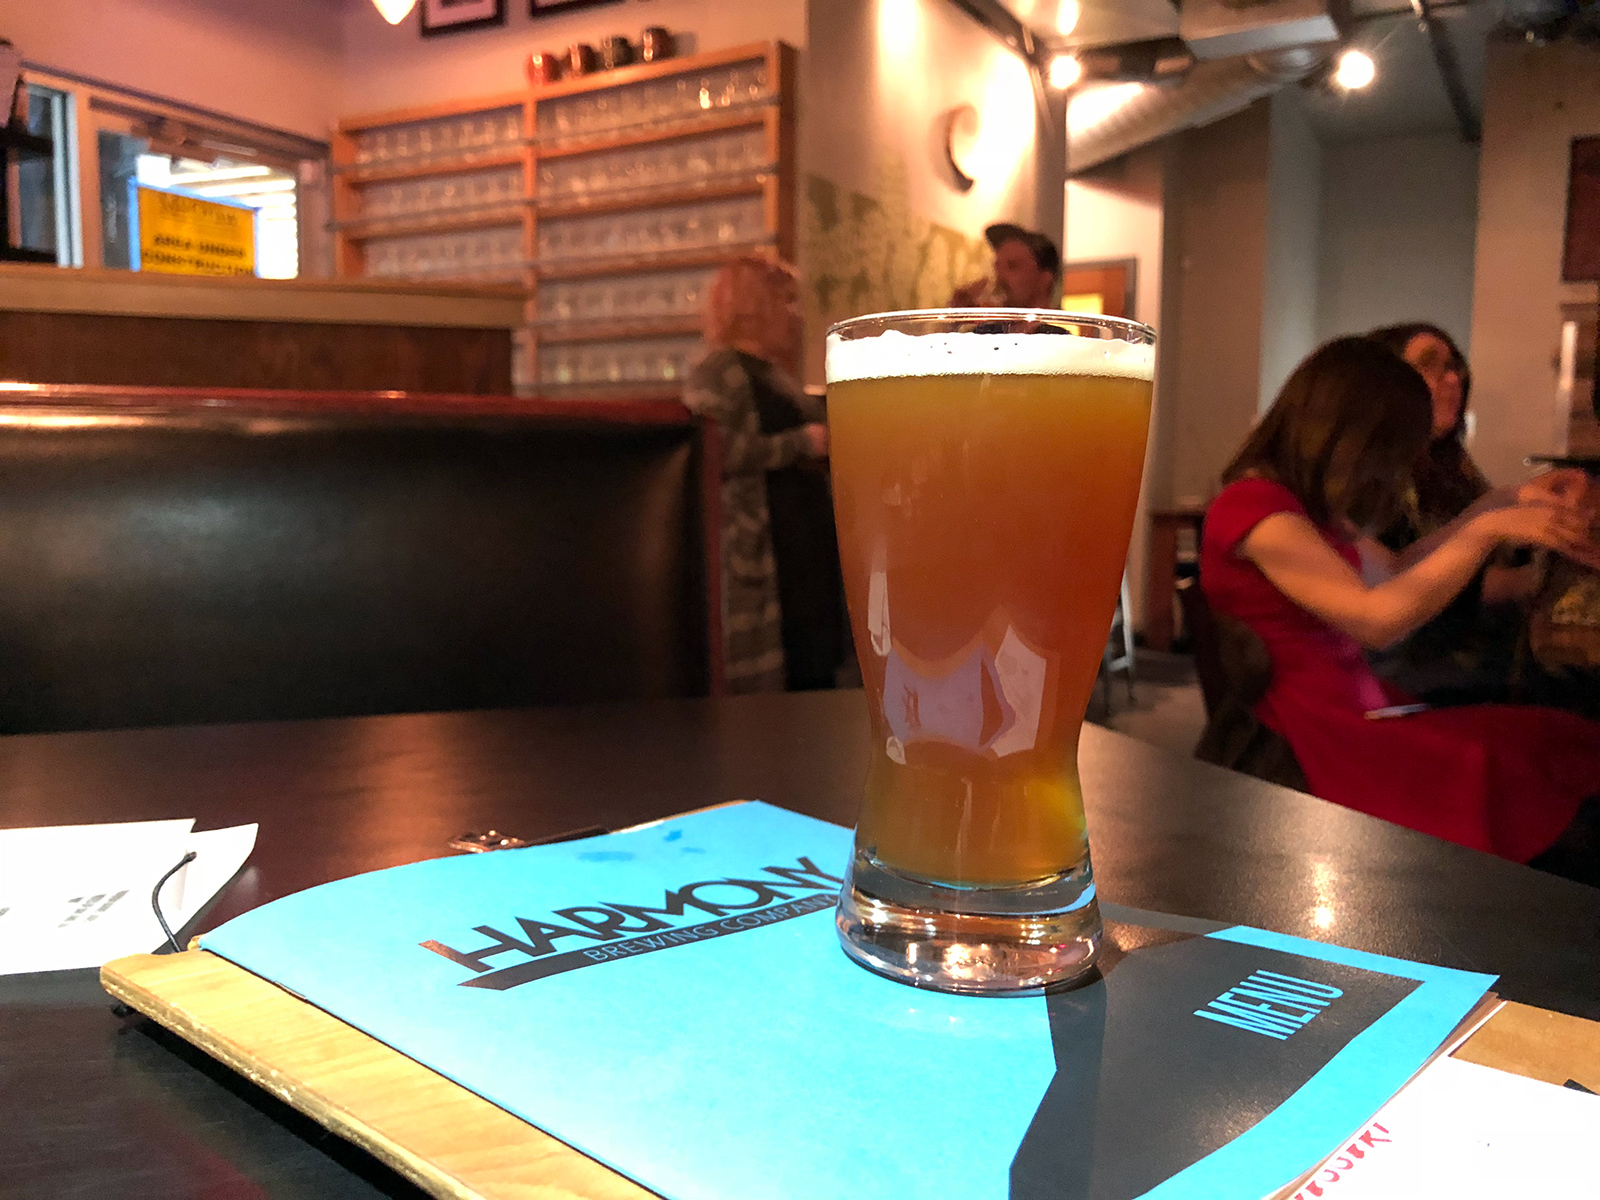 Harmony Brewing Co. in Grand Rapids, MI by Jets Like Taxis / Hopsmash